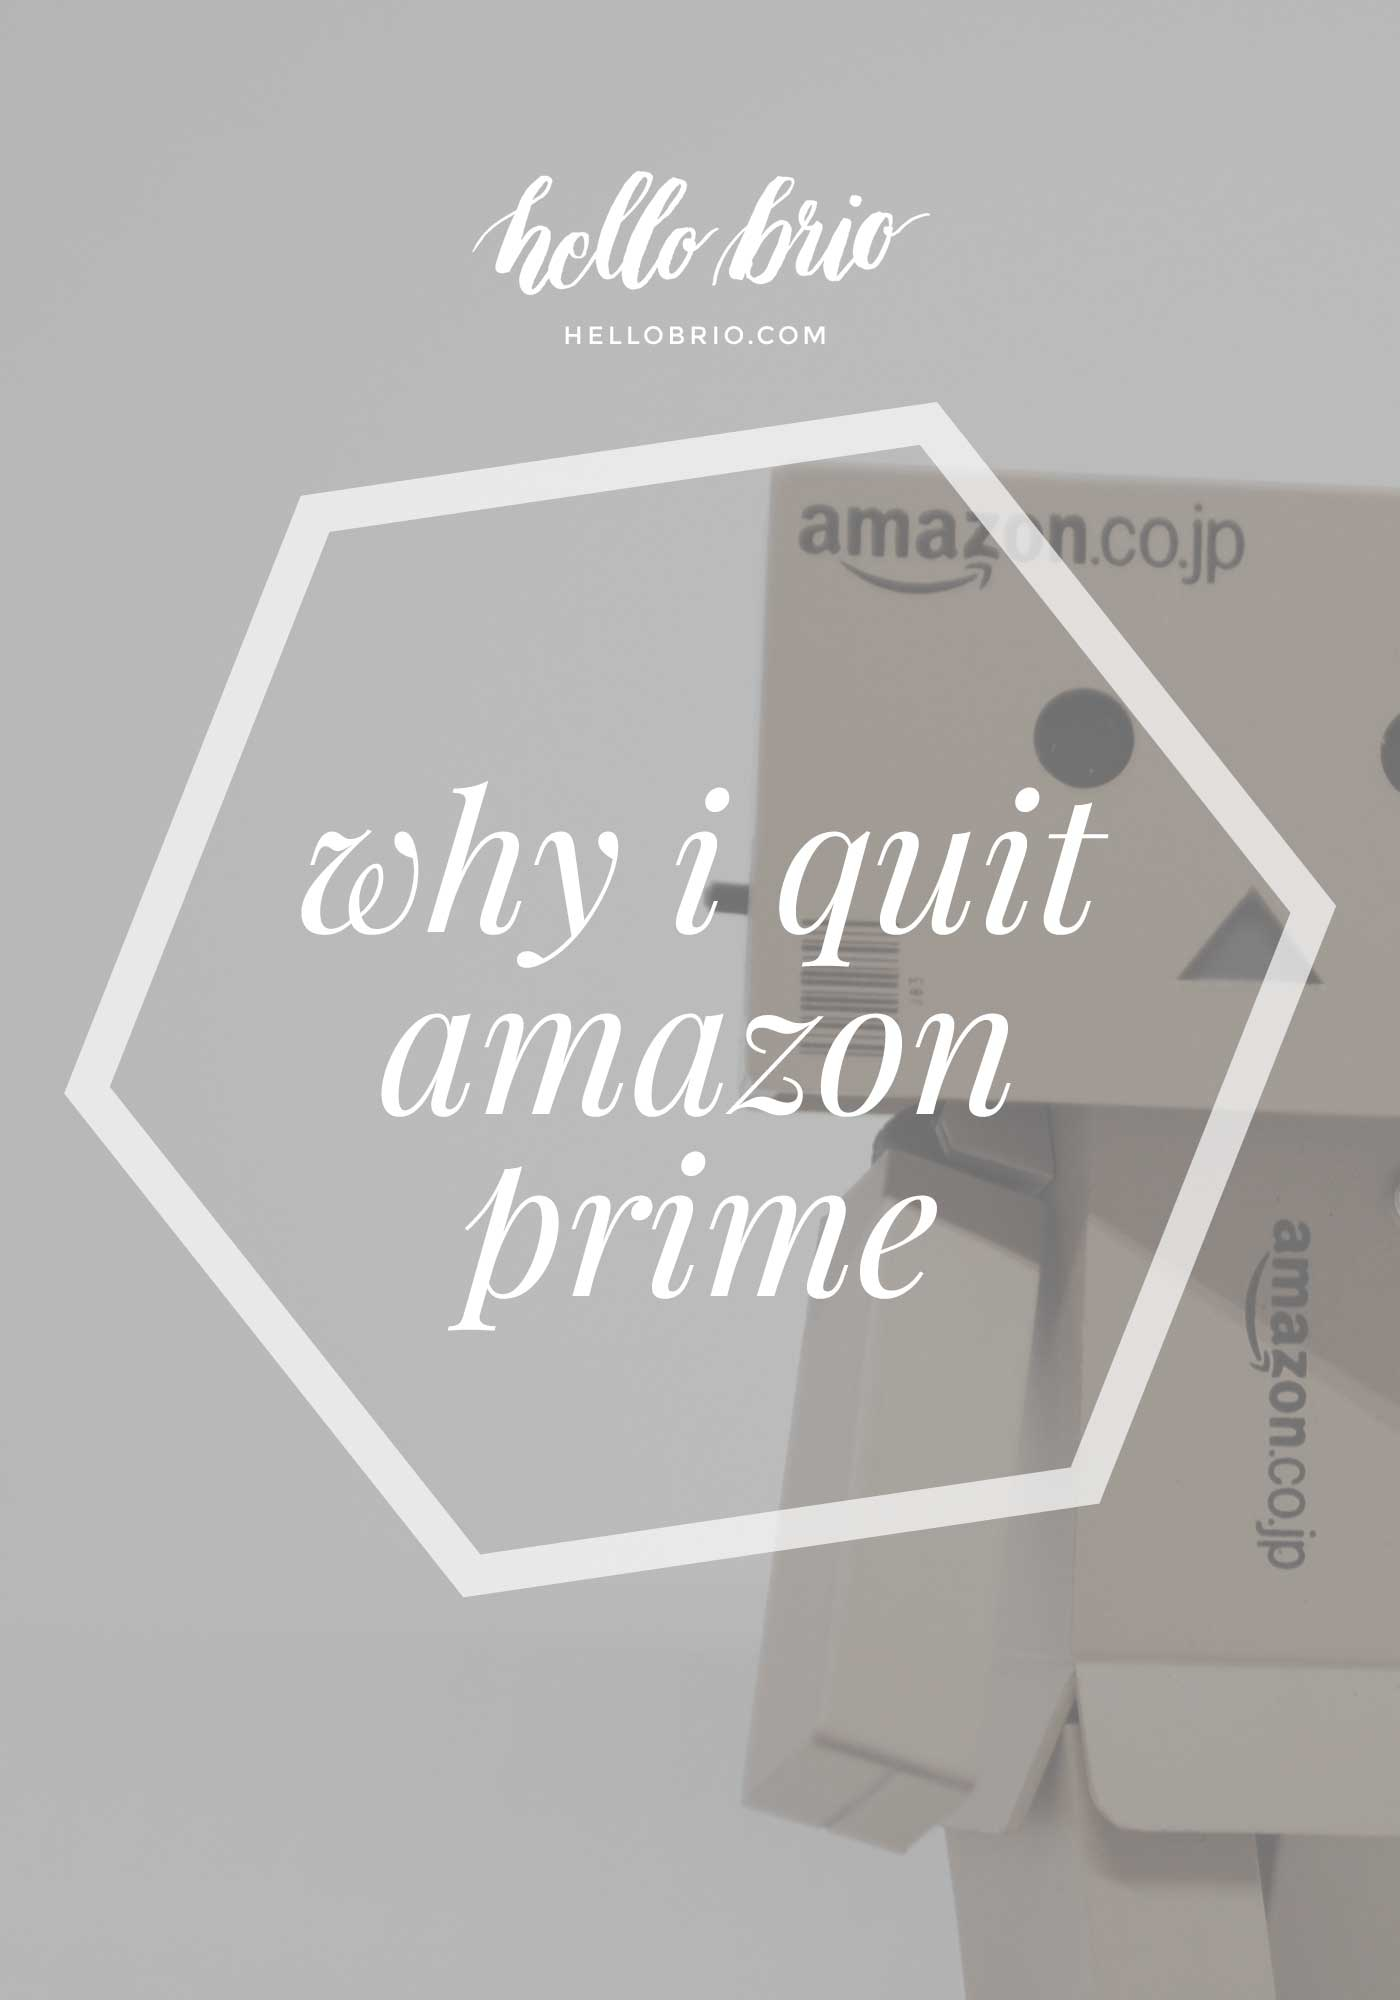 why-i-quit-amazon-prime-title.jpg